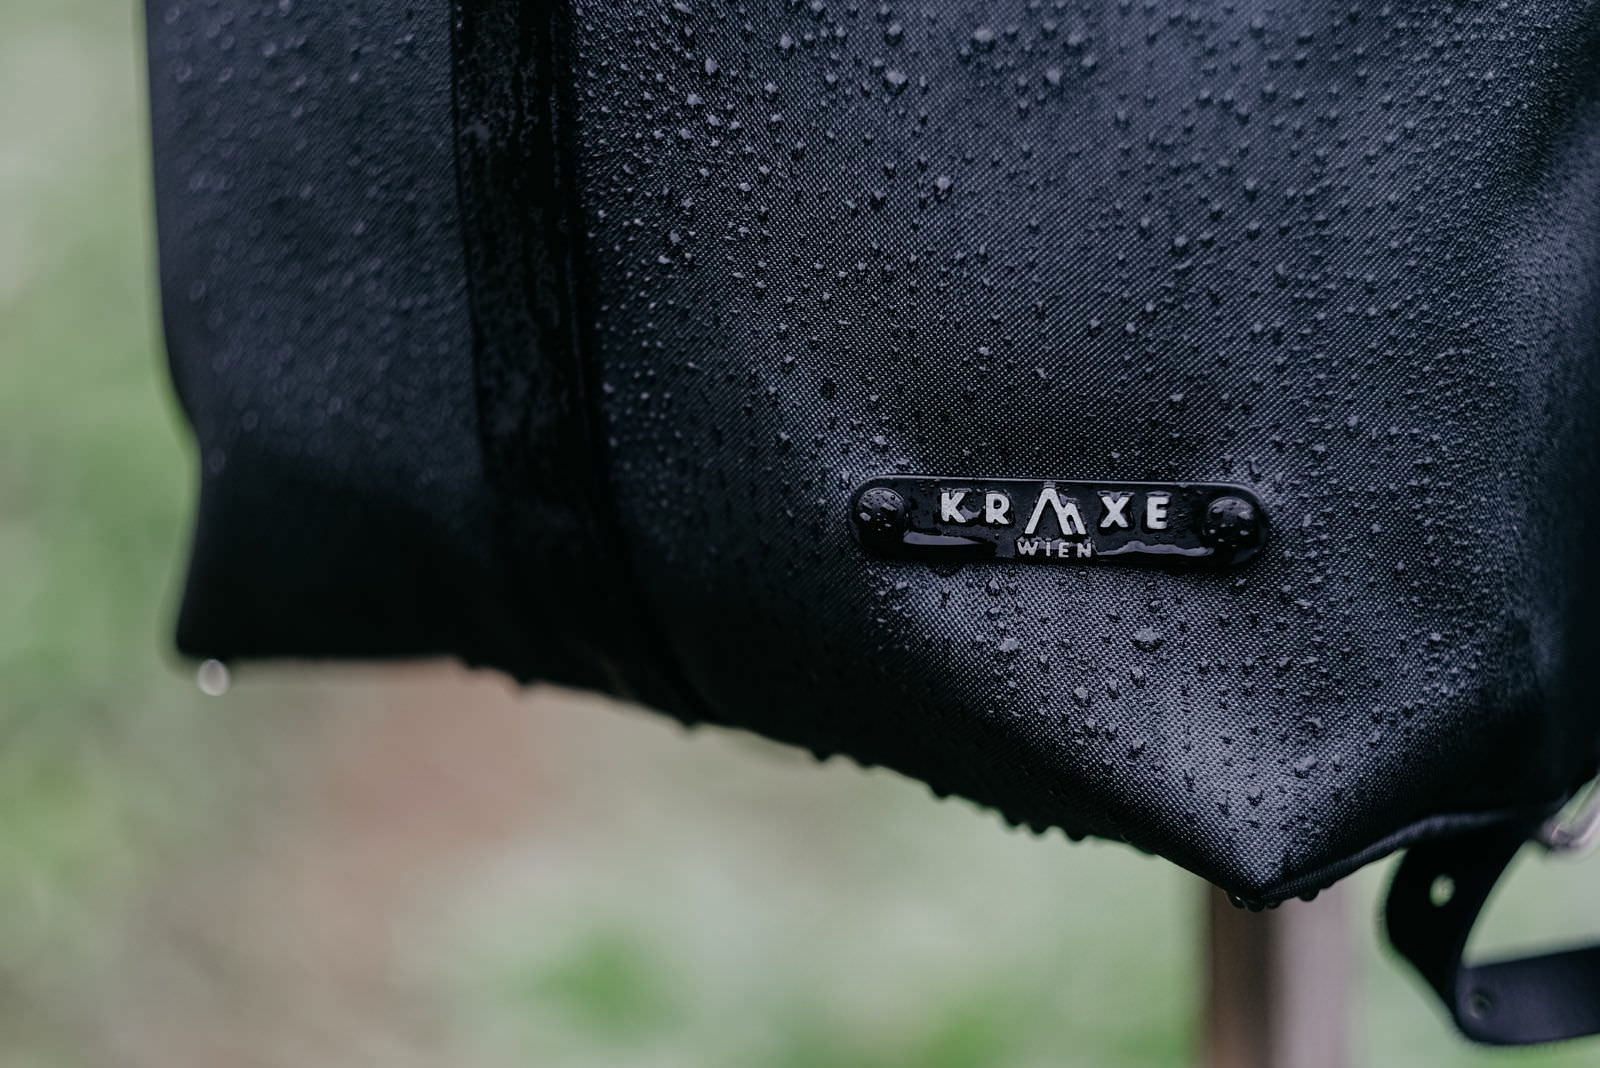 Ecommerce, Product and Fashion photographer in Porto - Portugal Kraxe-Wien